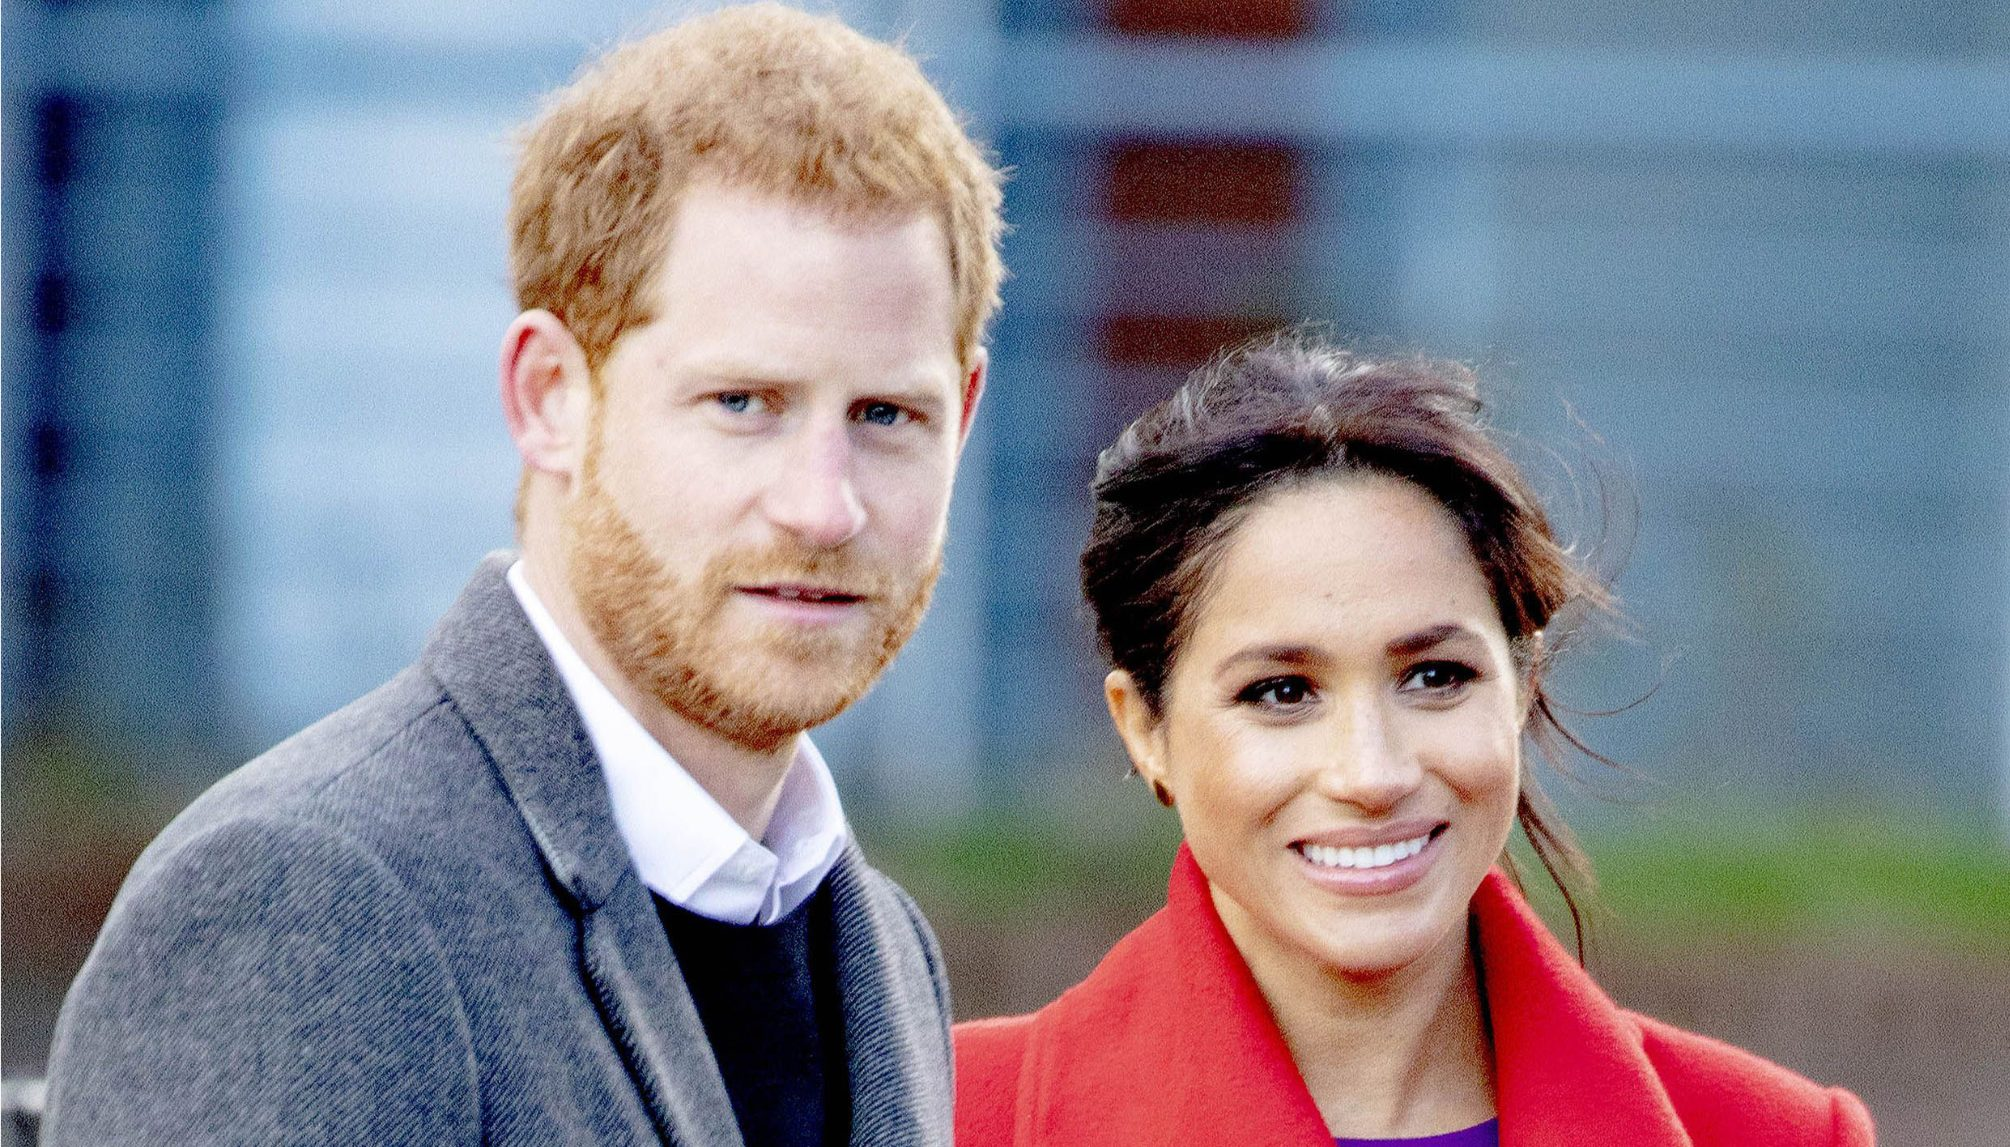 Prince William and Kate Middleton 'relieved' at Prince Harry and Meghan Markle's Christmas plans